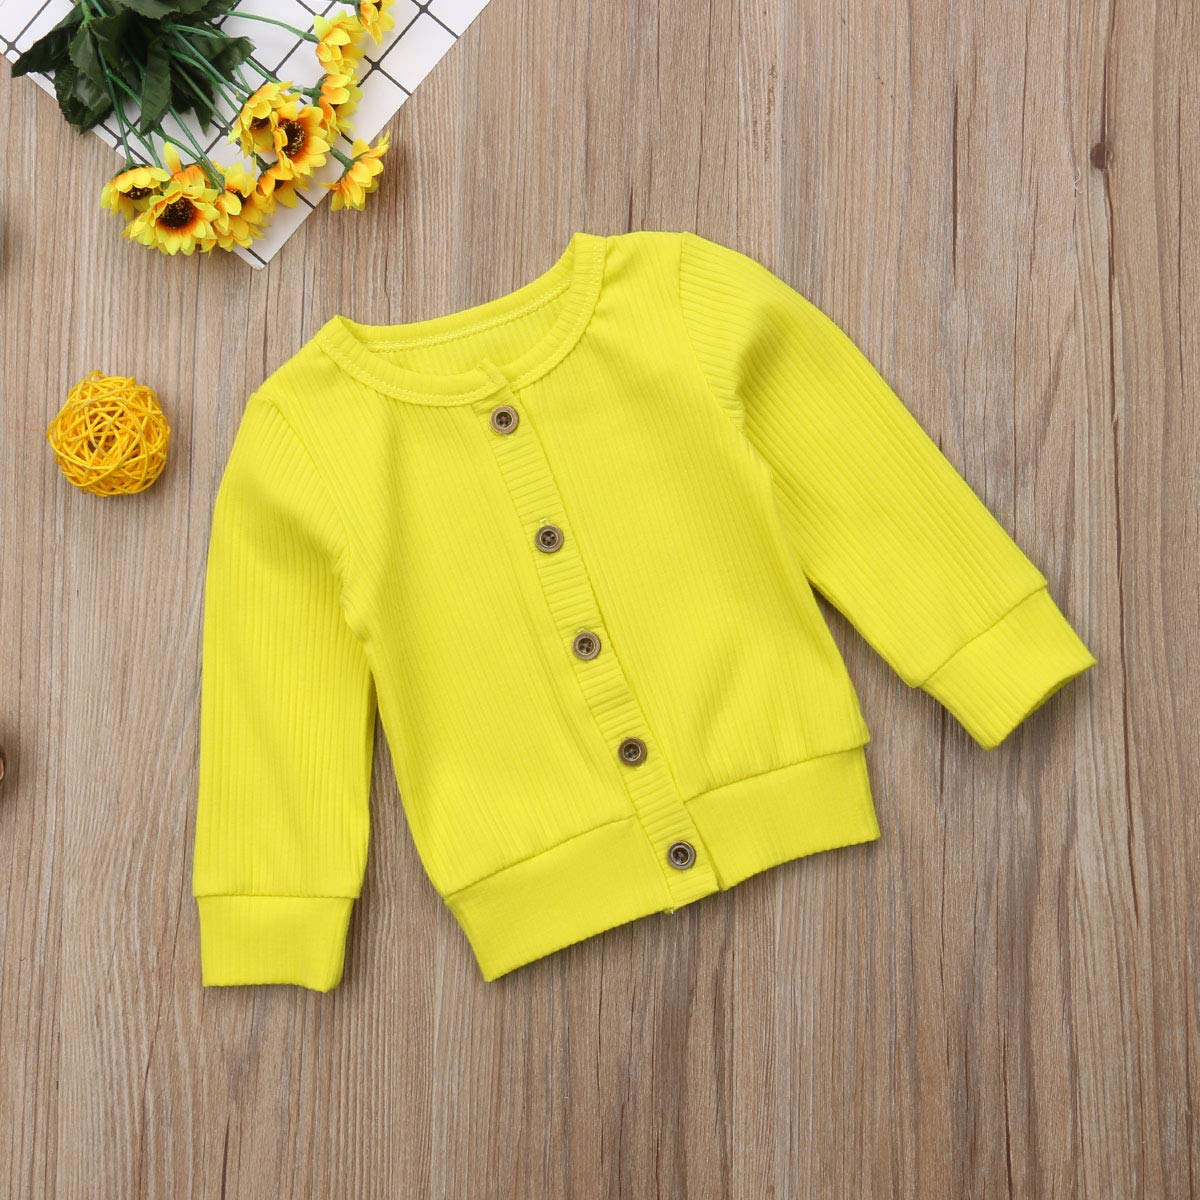 JUBILATE Infant Baby Girl Cute Crew Neck Button-Down Solid Knit Cardigan Sweater 0-24 Months